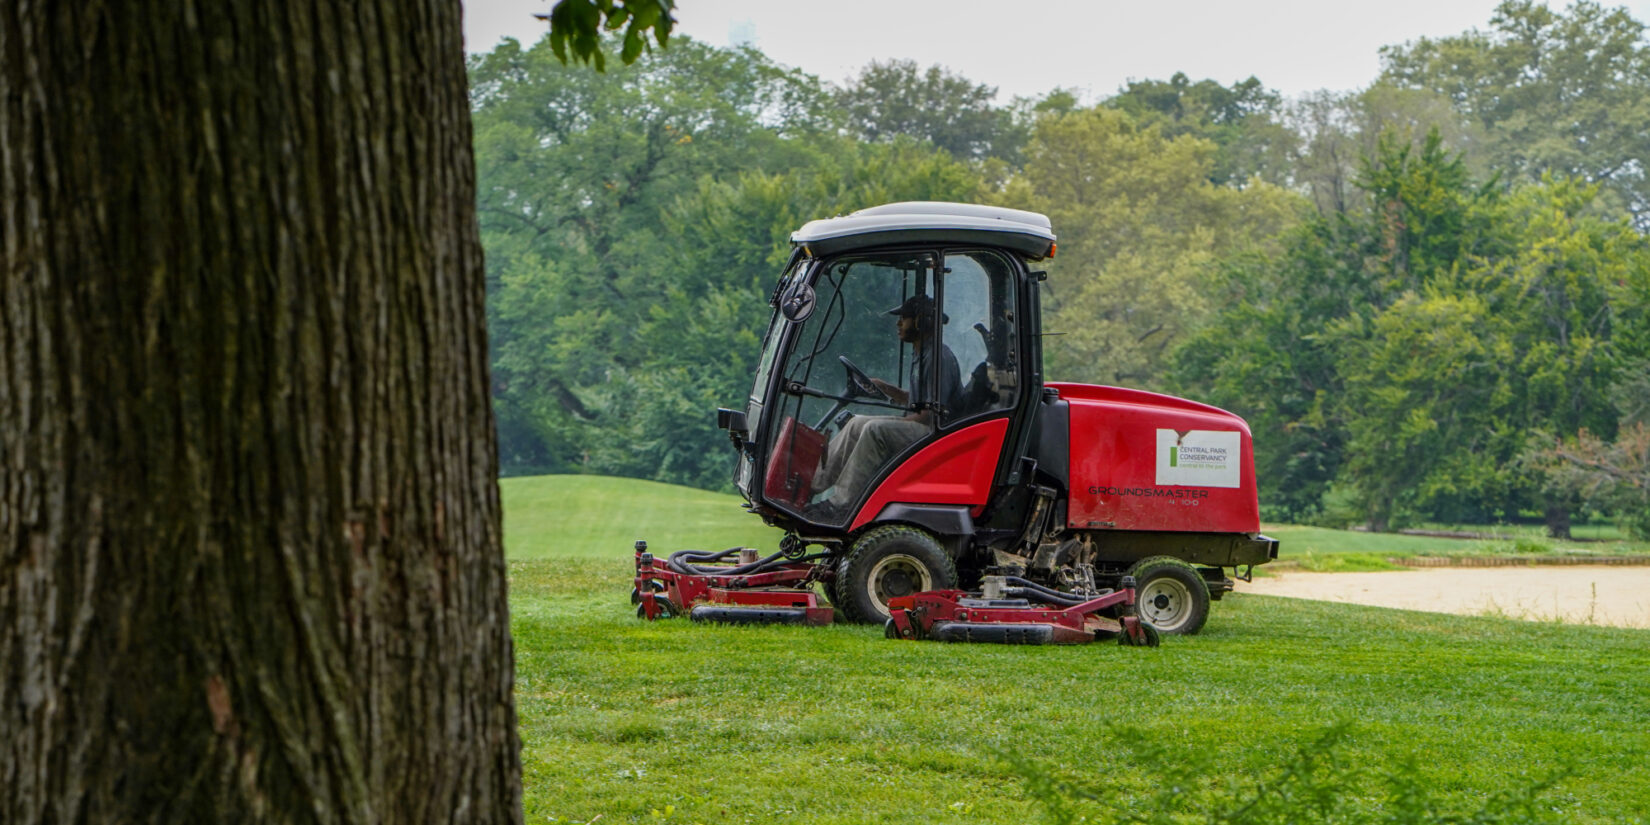 A red tractor mower in stark relief on a green lawn, framed by dark brown tree trunks.